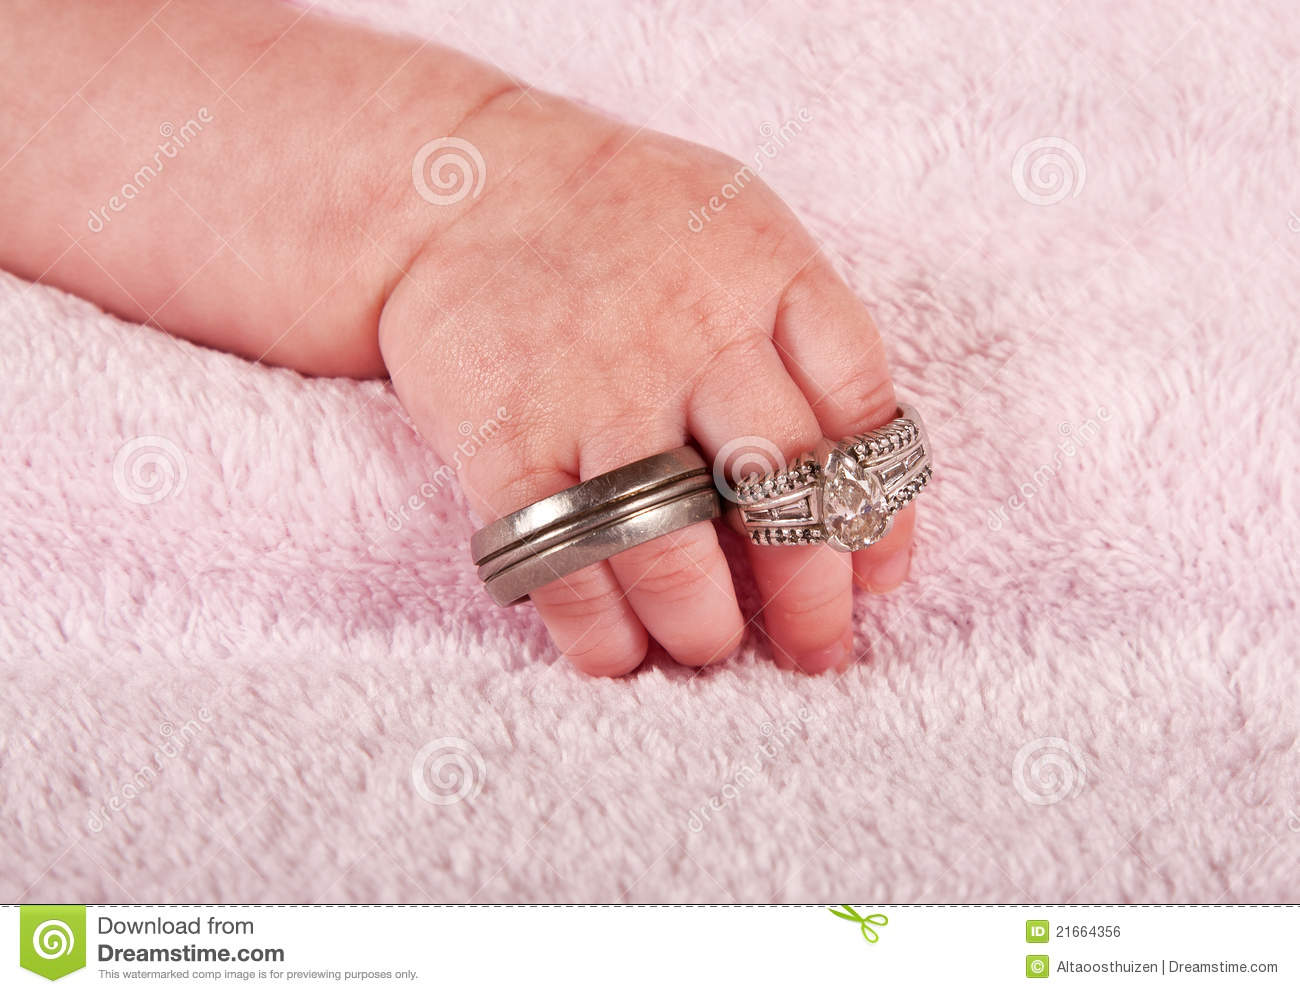 Baby Holding Wedding Rings Stock Photos - Download 100 Images